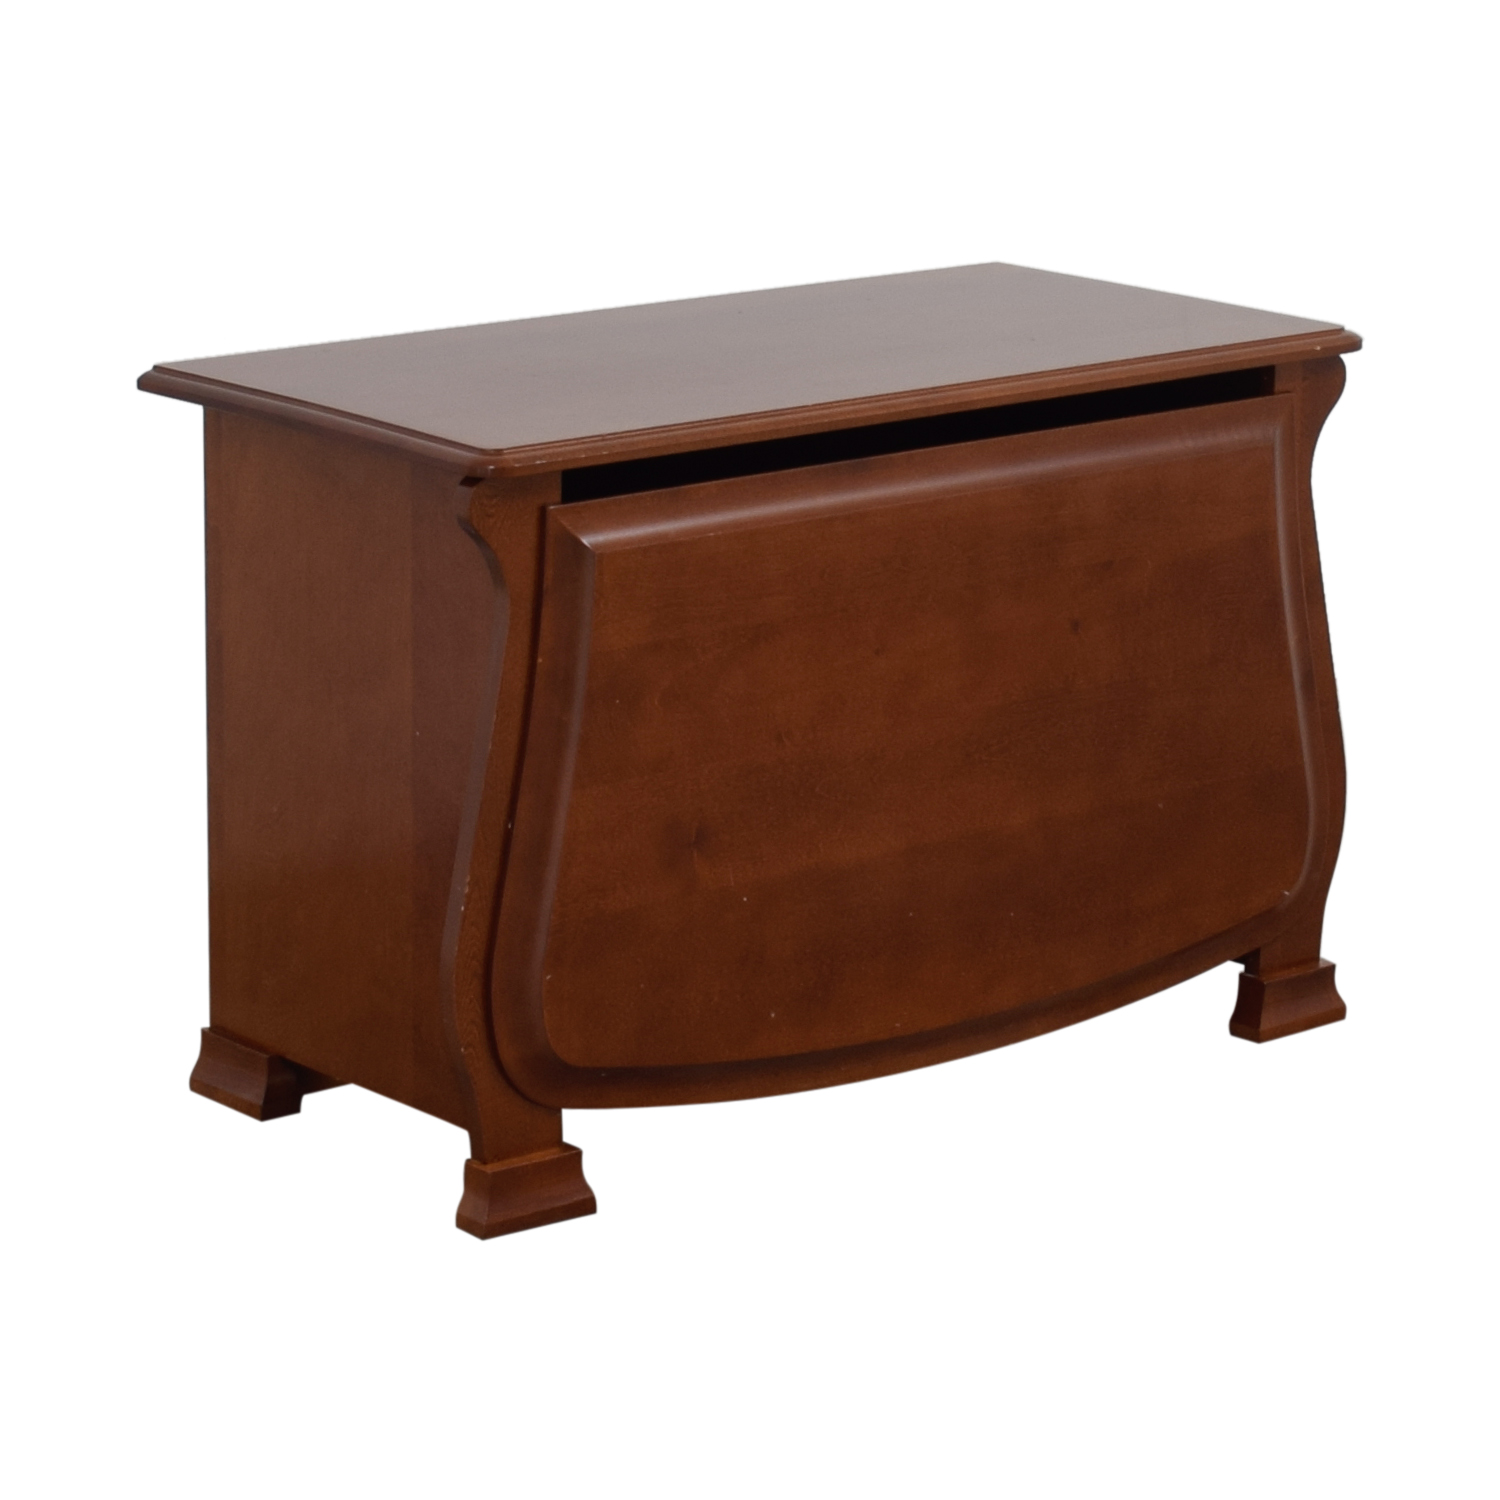 Pottery Barn Pottery Barn Wood Toy Chest / Storage